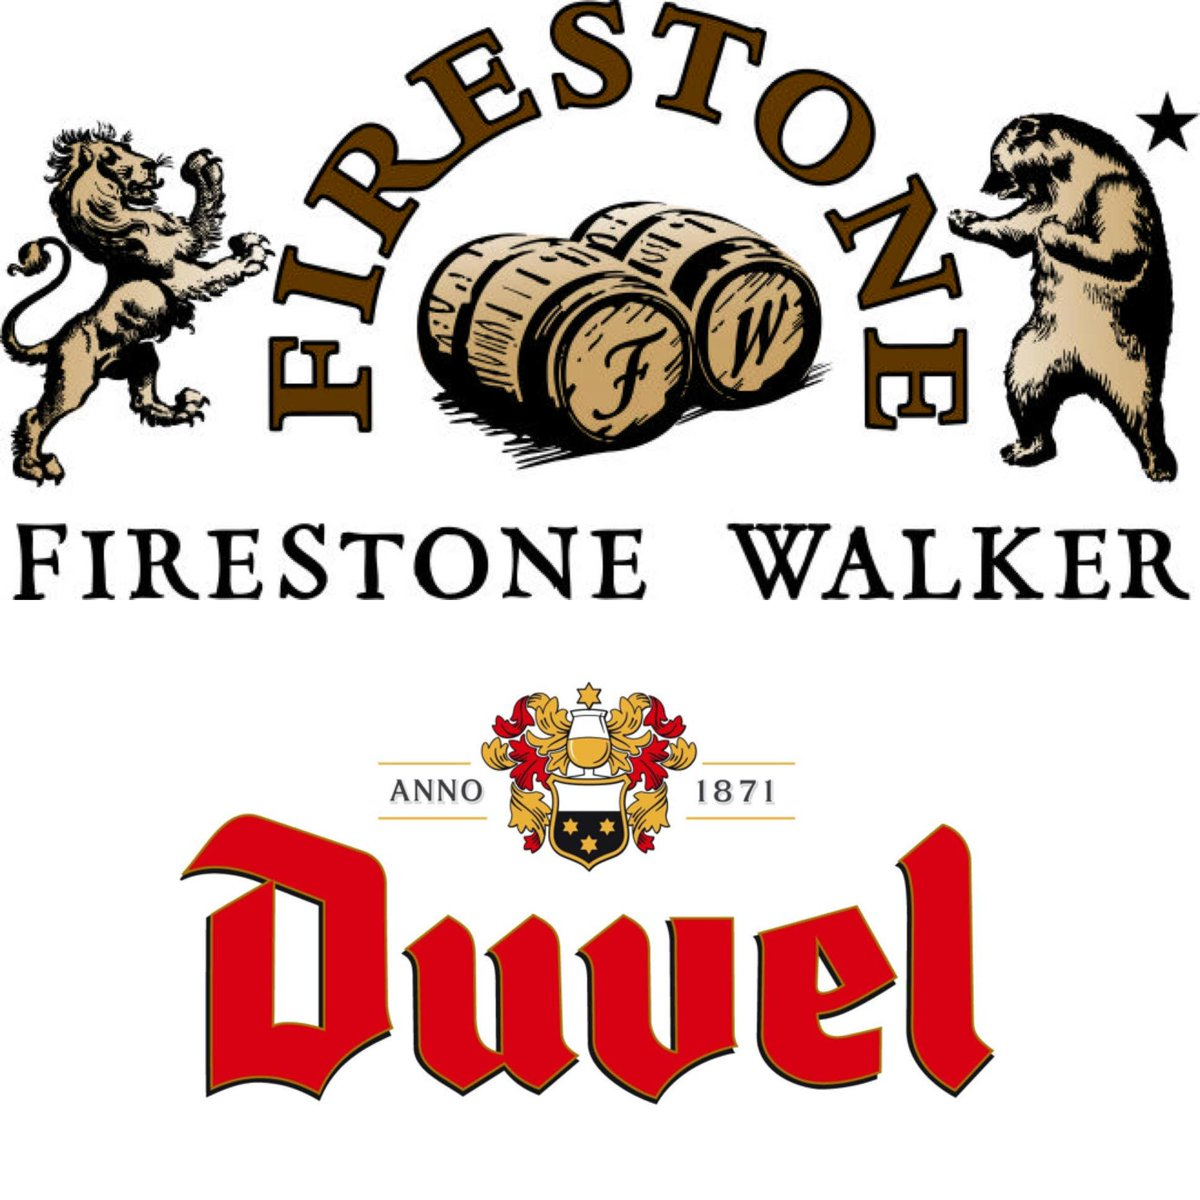 Breaking #CraftBeer News - @FirestoneWalker Brewing Has Been Acquired by @DuvelBeer Moortgat http://t.co/9ebyADJ5bv http://t.co/ZskSsF1bST